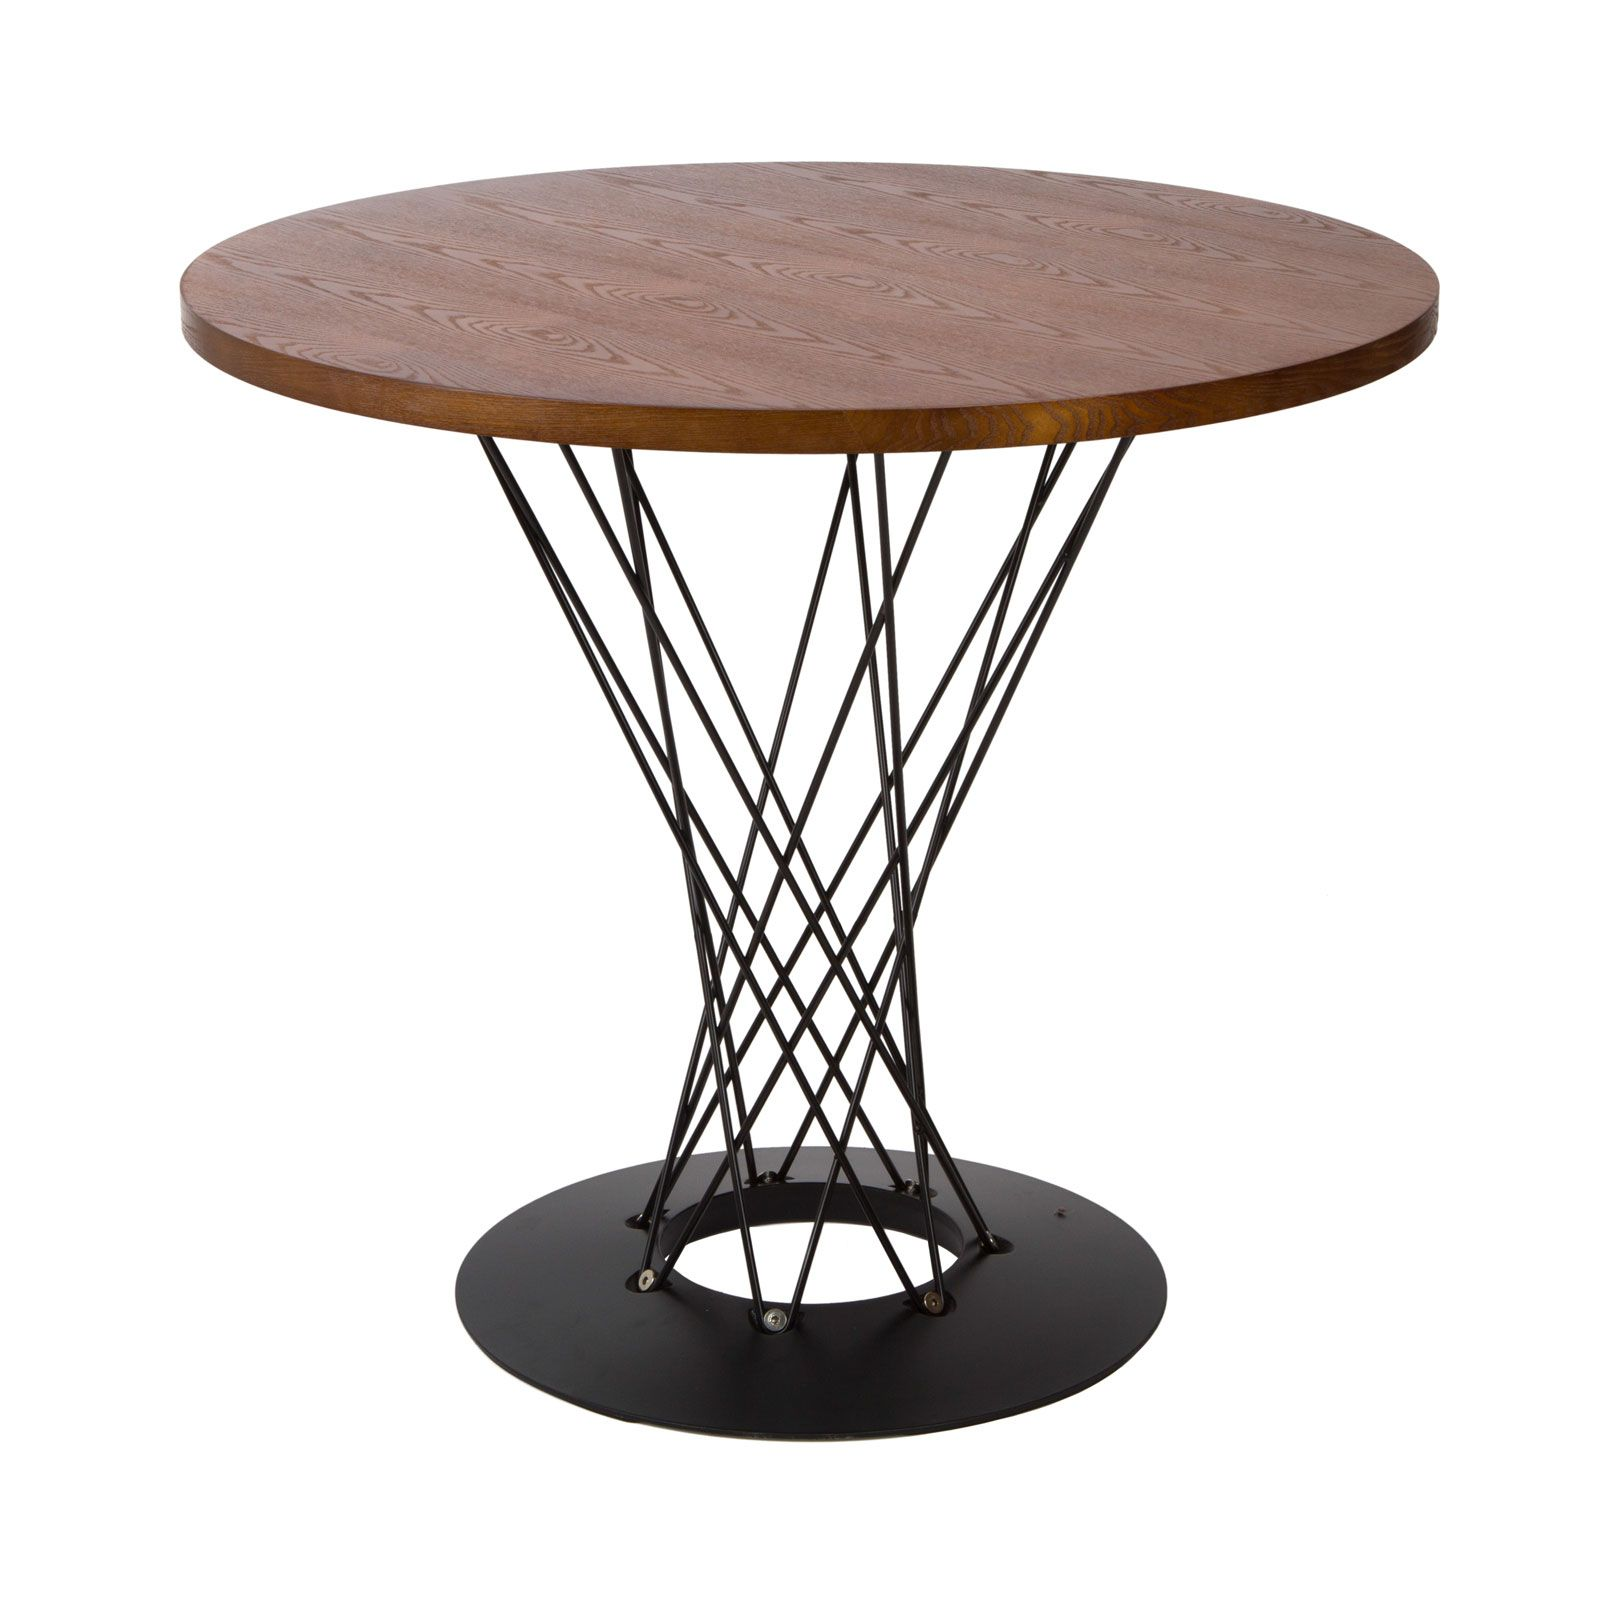 mix it up with this designer table that utilizes black